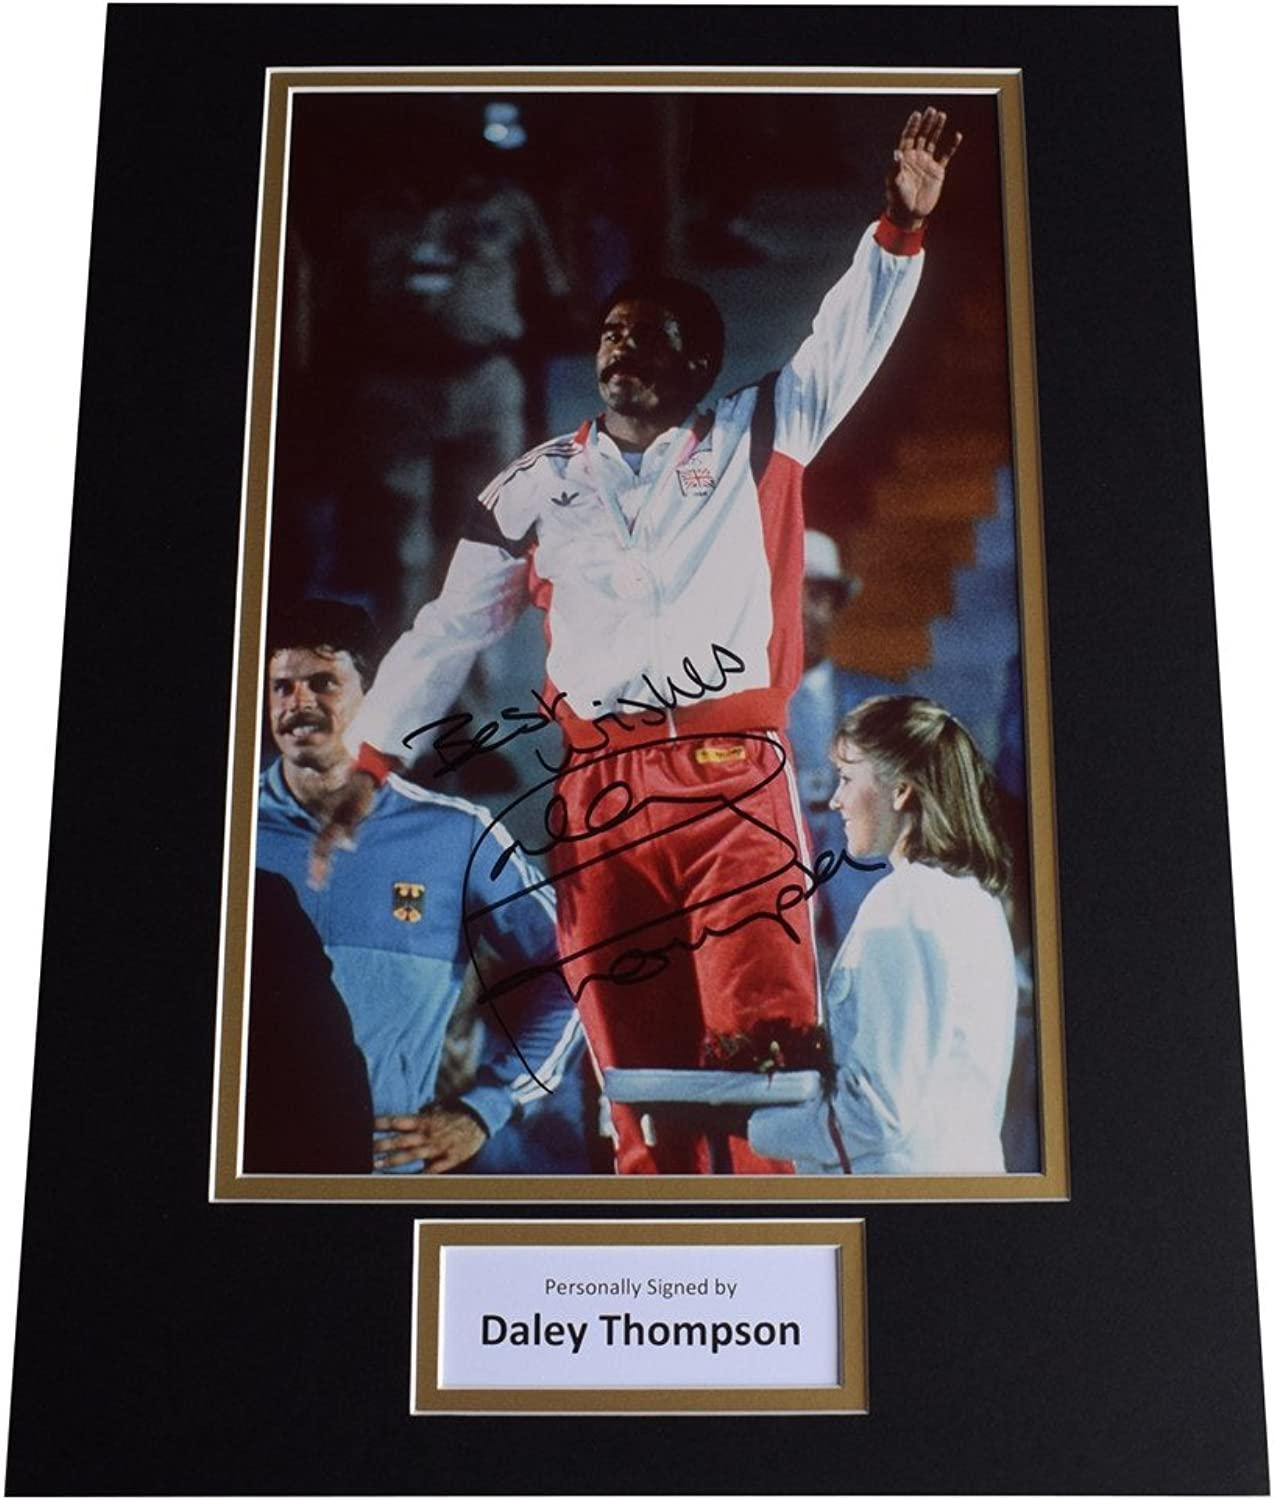 Sportagraphs Daley Thompson SIGNED autograph 16x12 photo display Olympic Decathlon AFTAL COA